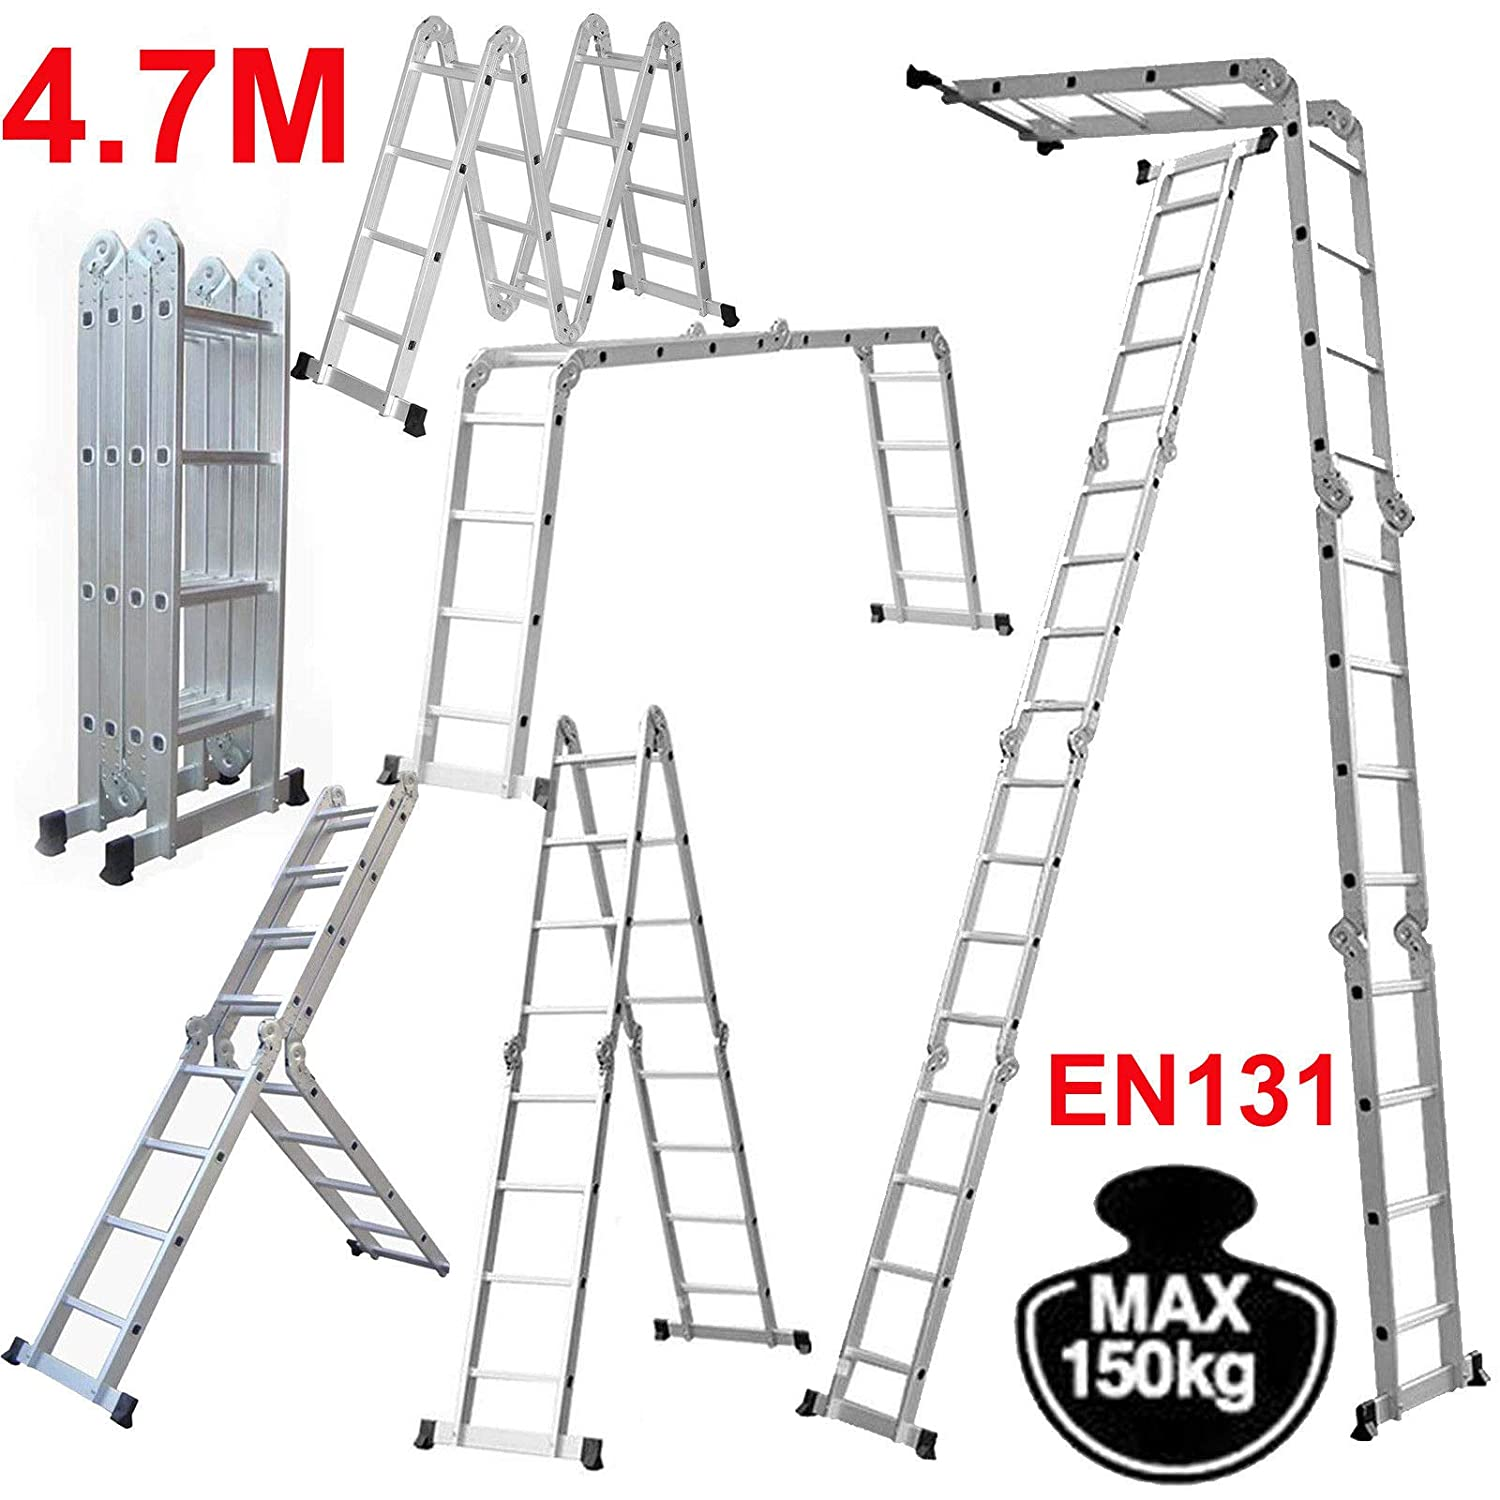 4x4 Aluminium Multi Function Folding Tool Decorating Extension Loft Ladder 4.7M 15.5FT Heavy Duty Combination Step 1 Painting Tray Manufactured to EN131 Up to 330pound/150kg ZanGe Factory